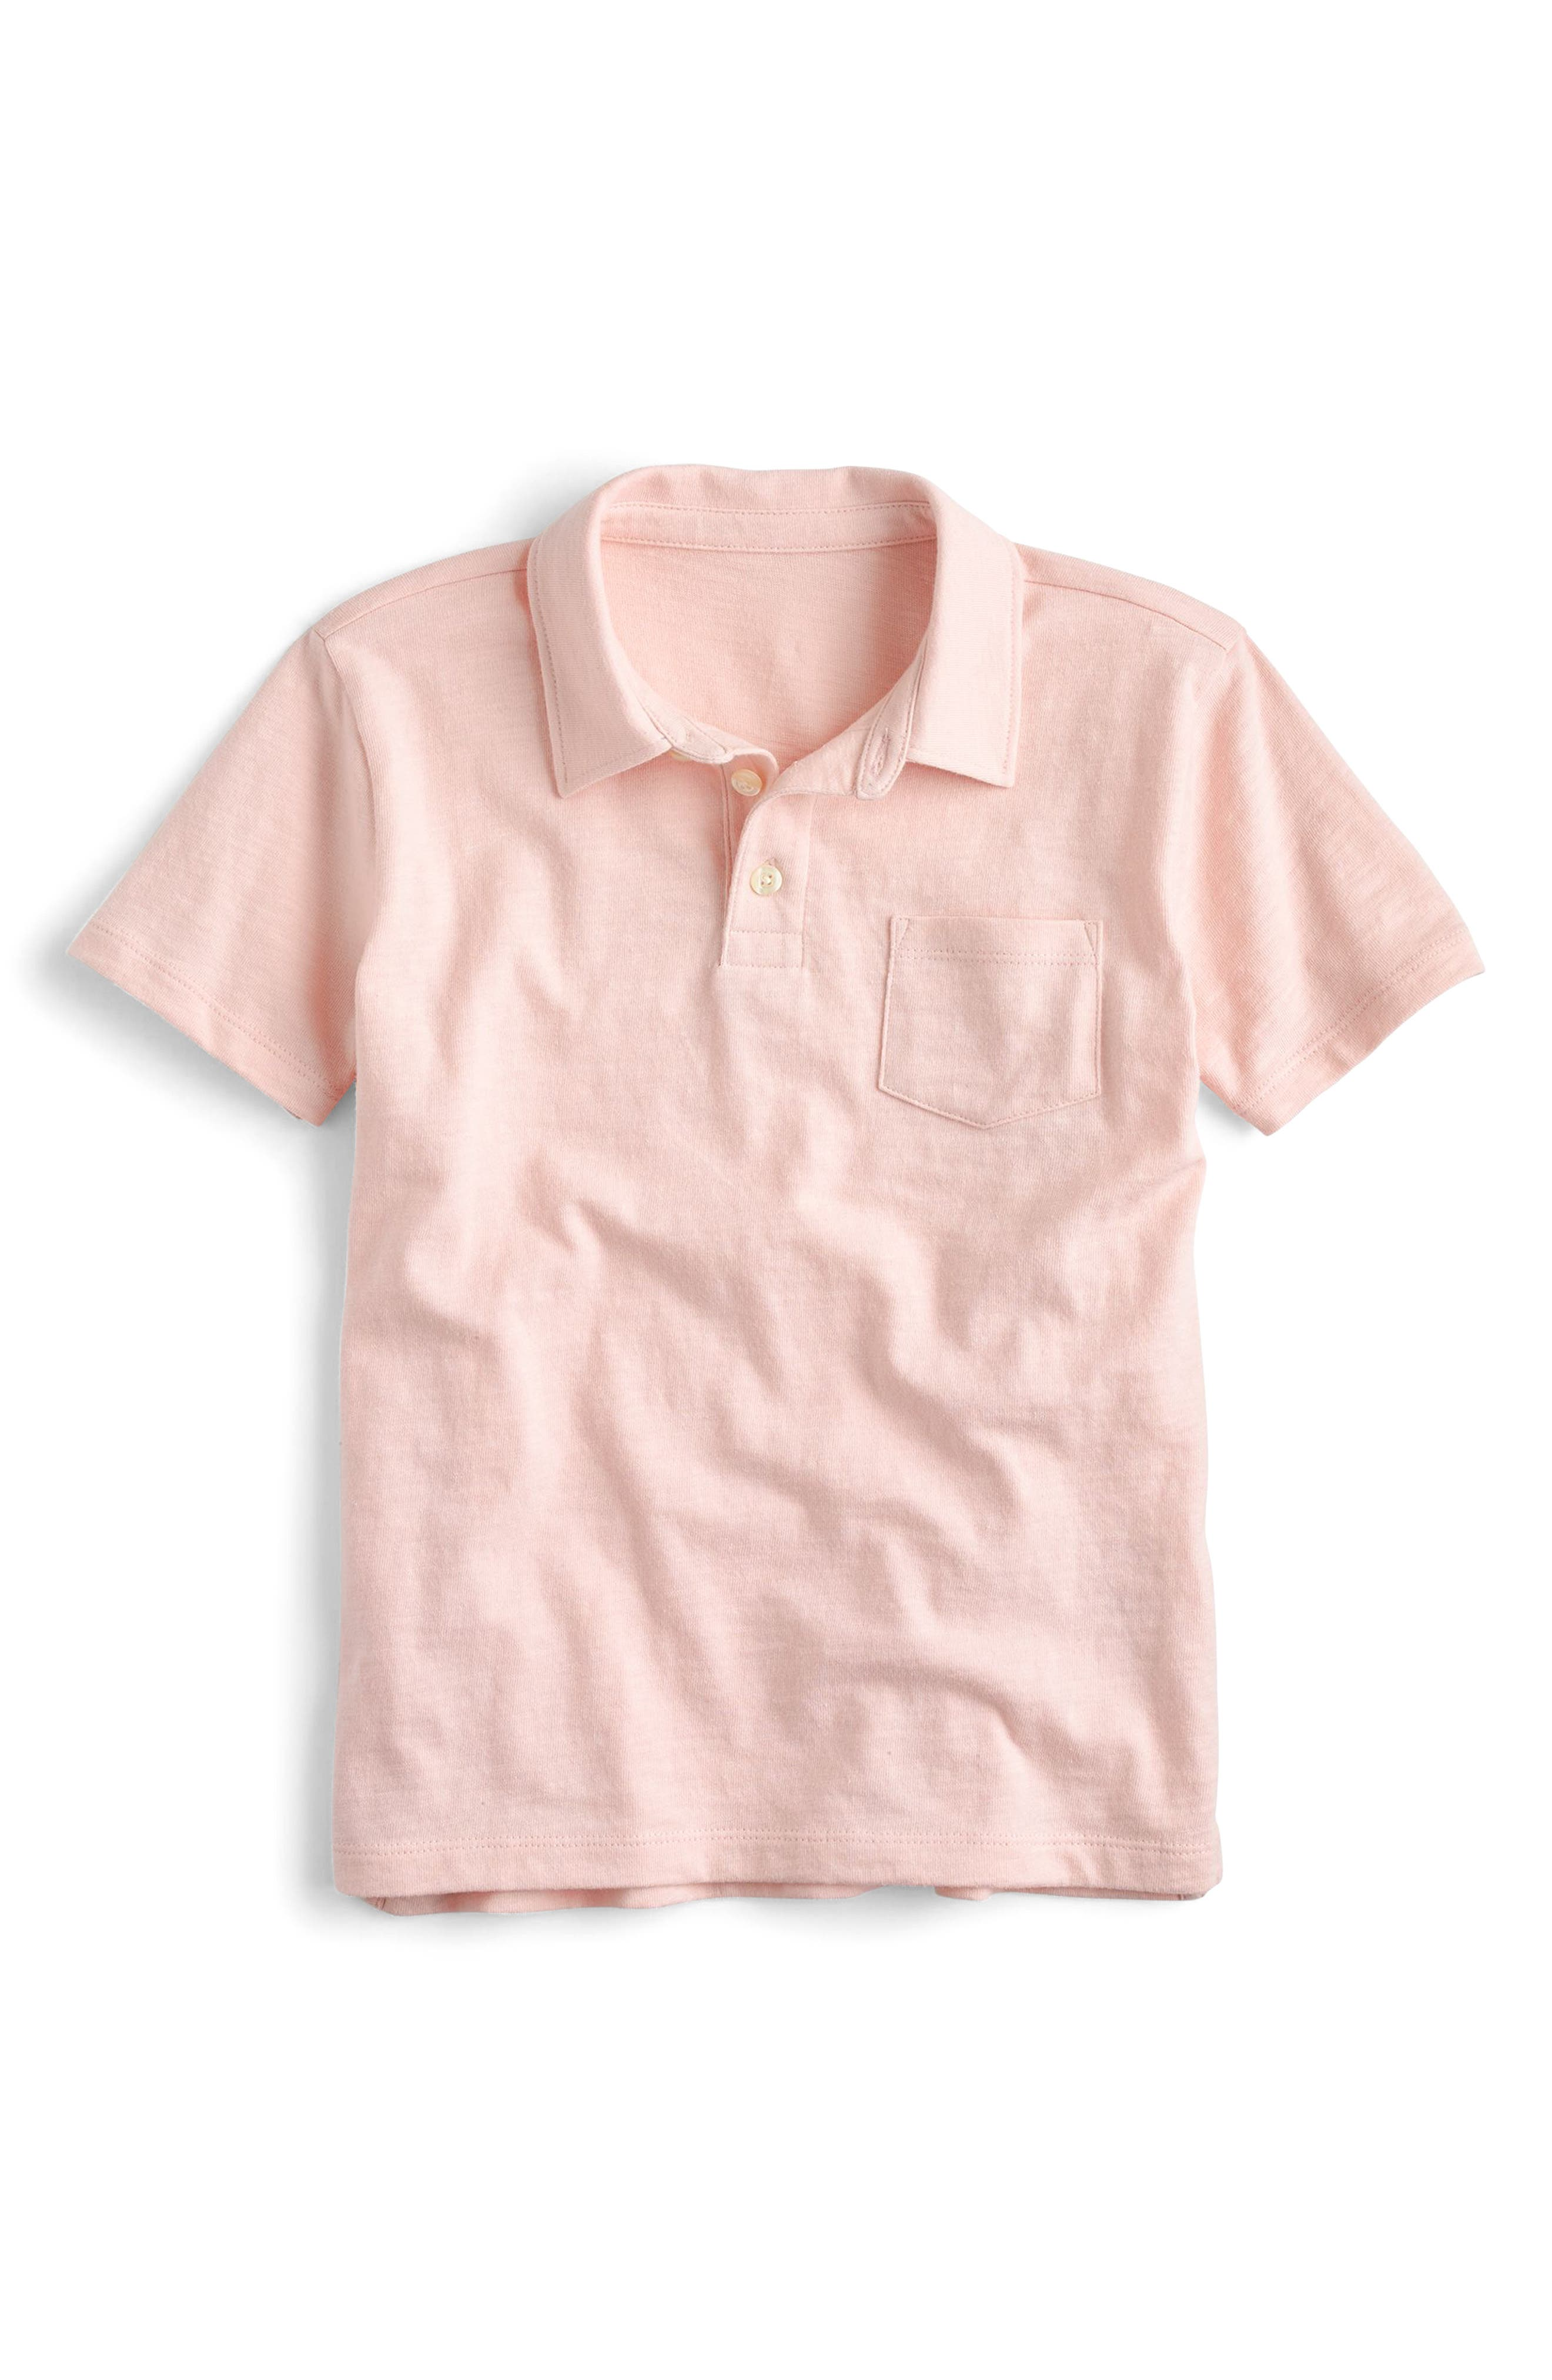 Alternate Image 1 Selected - crewcuts by J.Crew Jersey Polo (Toddler Boys, Little Boys & Big Boys)